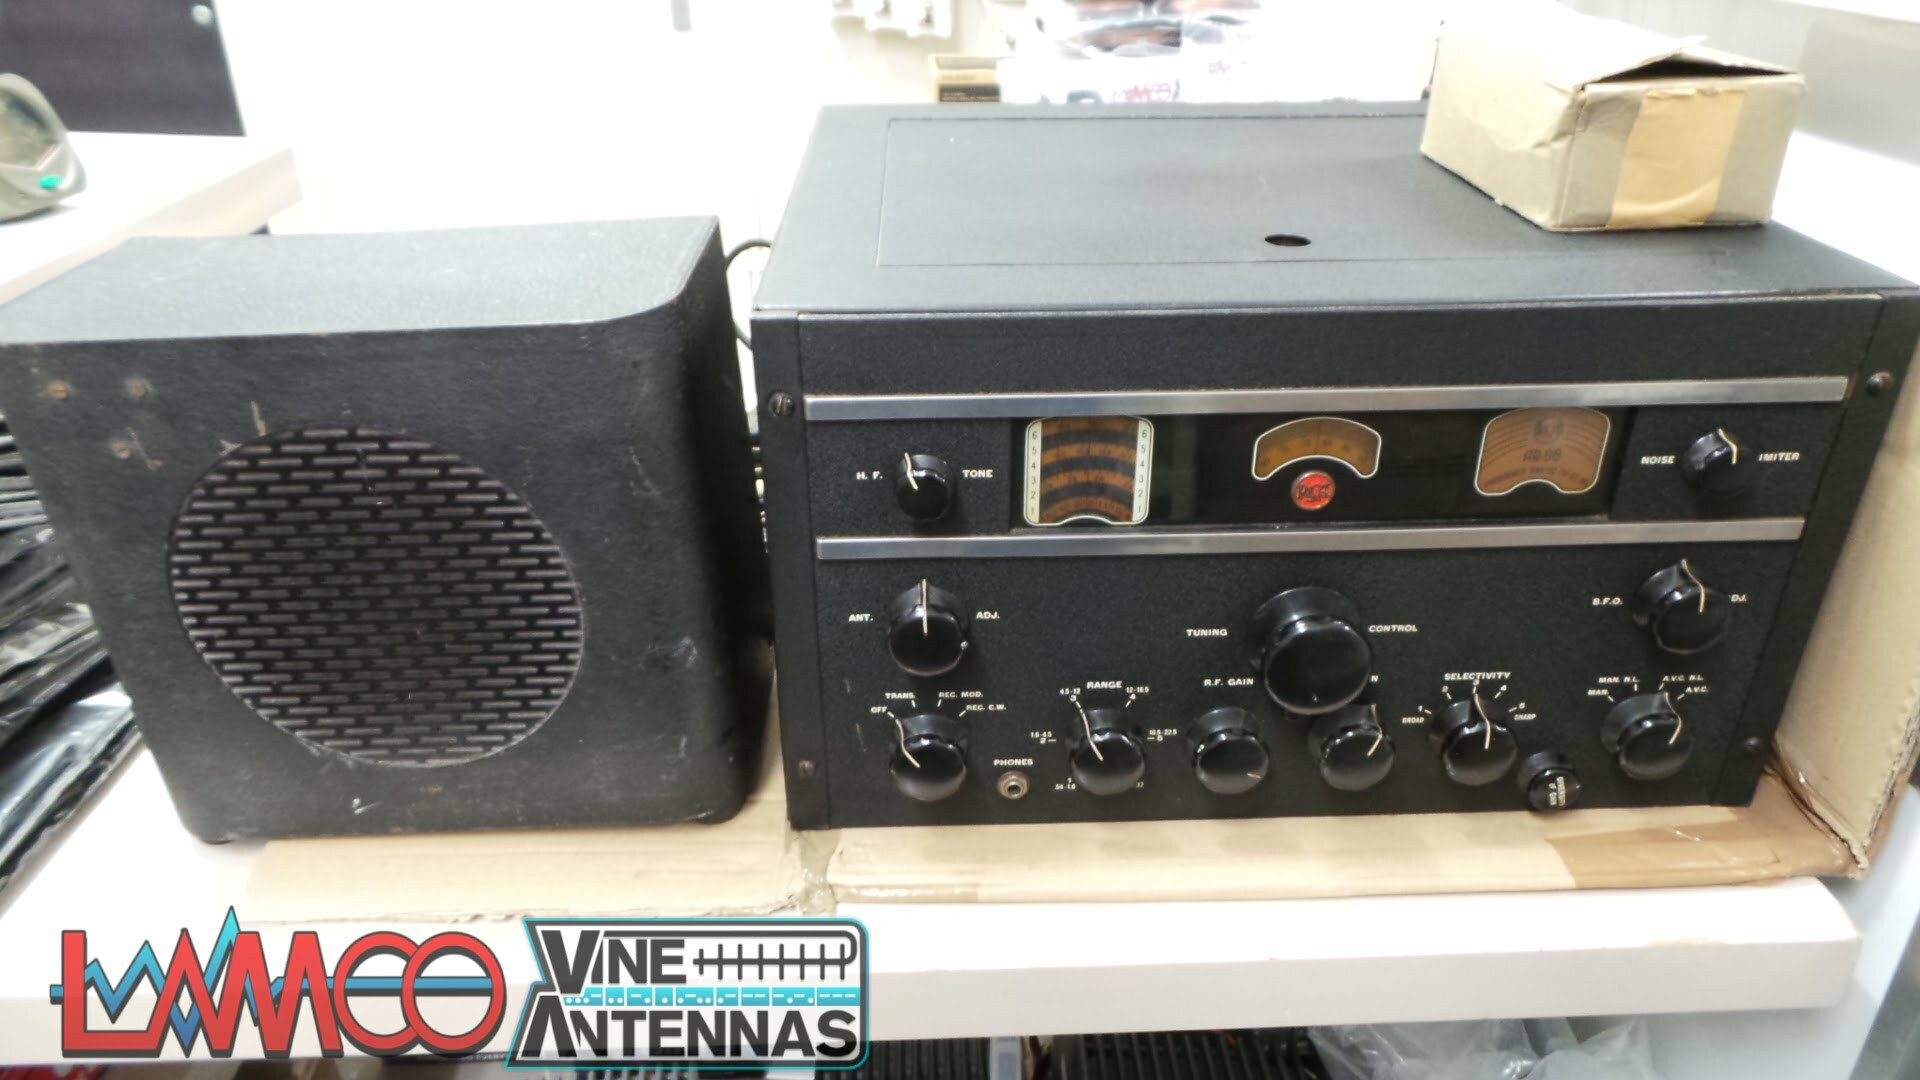 RCA R-88 HF Receiver Sold As Seen No Warranty Use As Spares or Repairs Junksale Barnsley